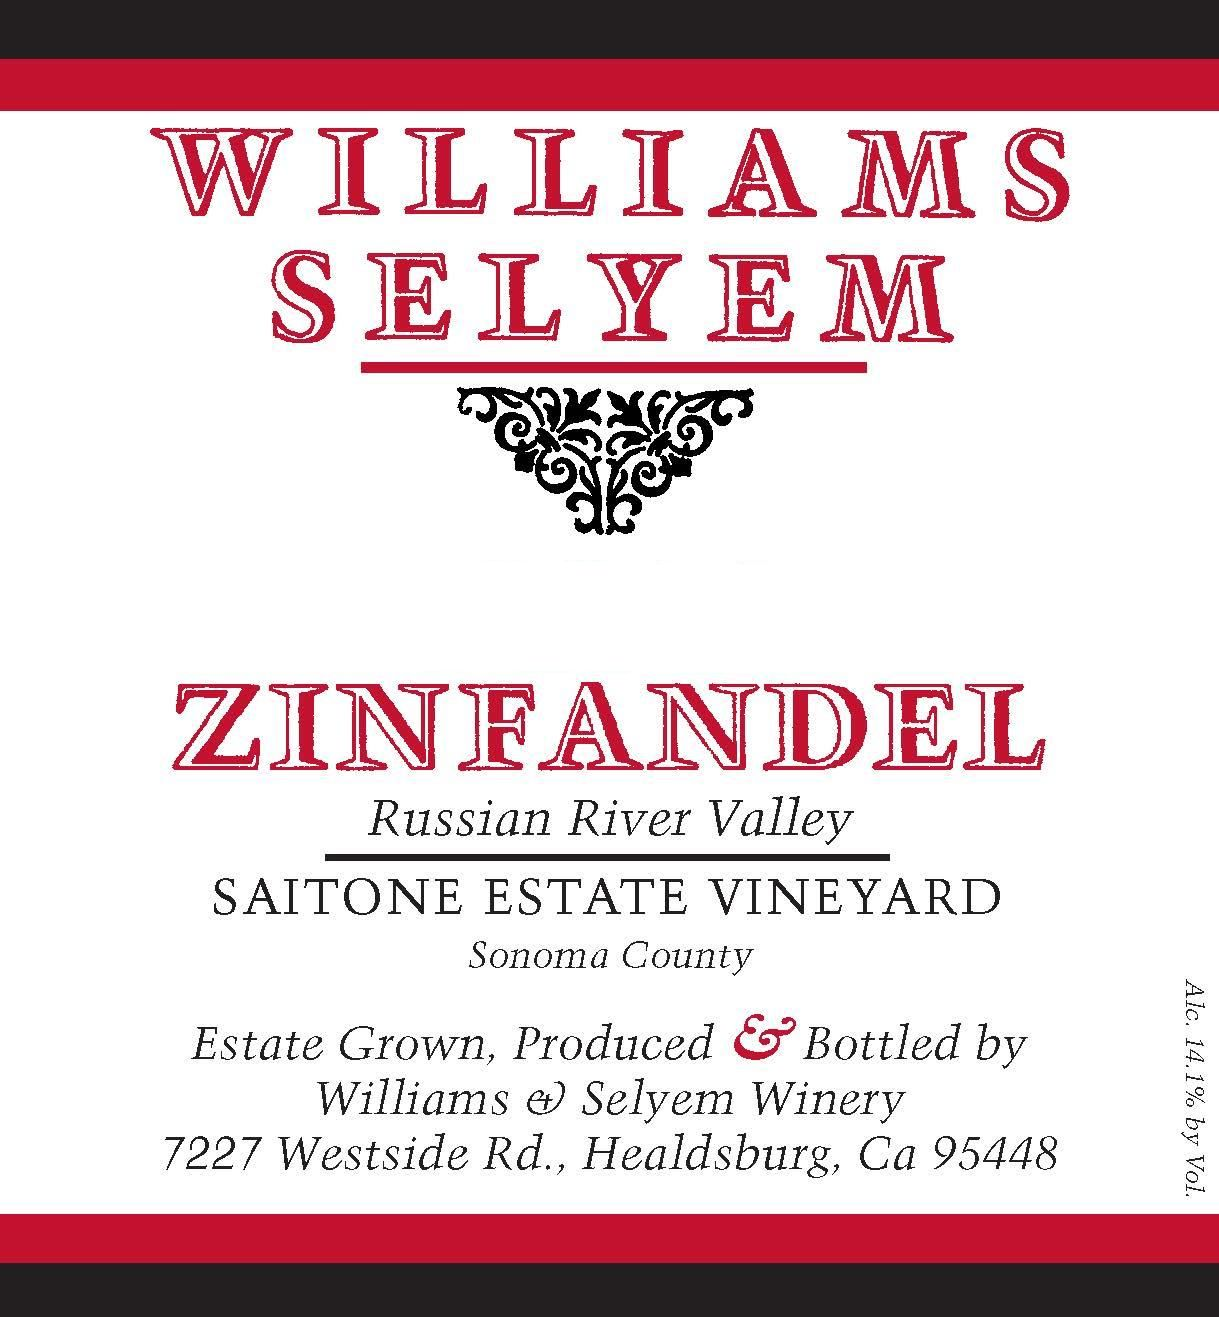 Williams Selyem Saitone Estate Zinfandel 2017  Front Label